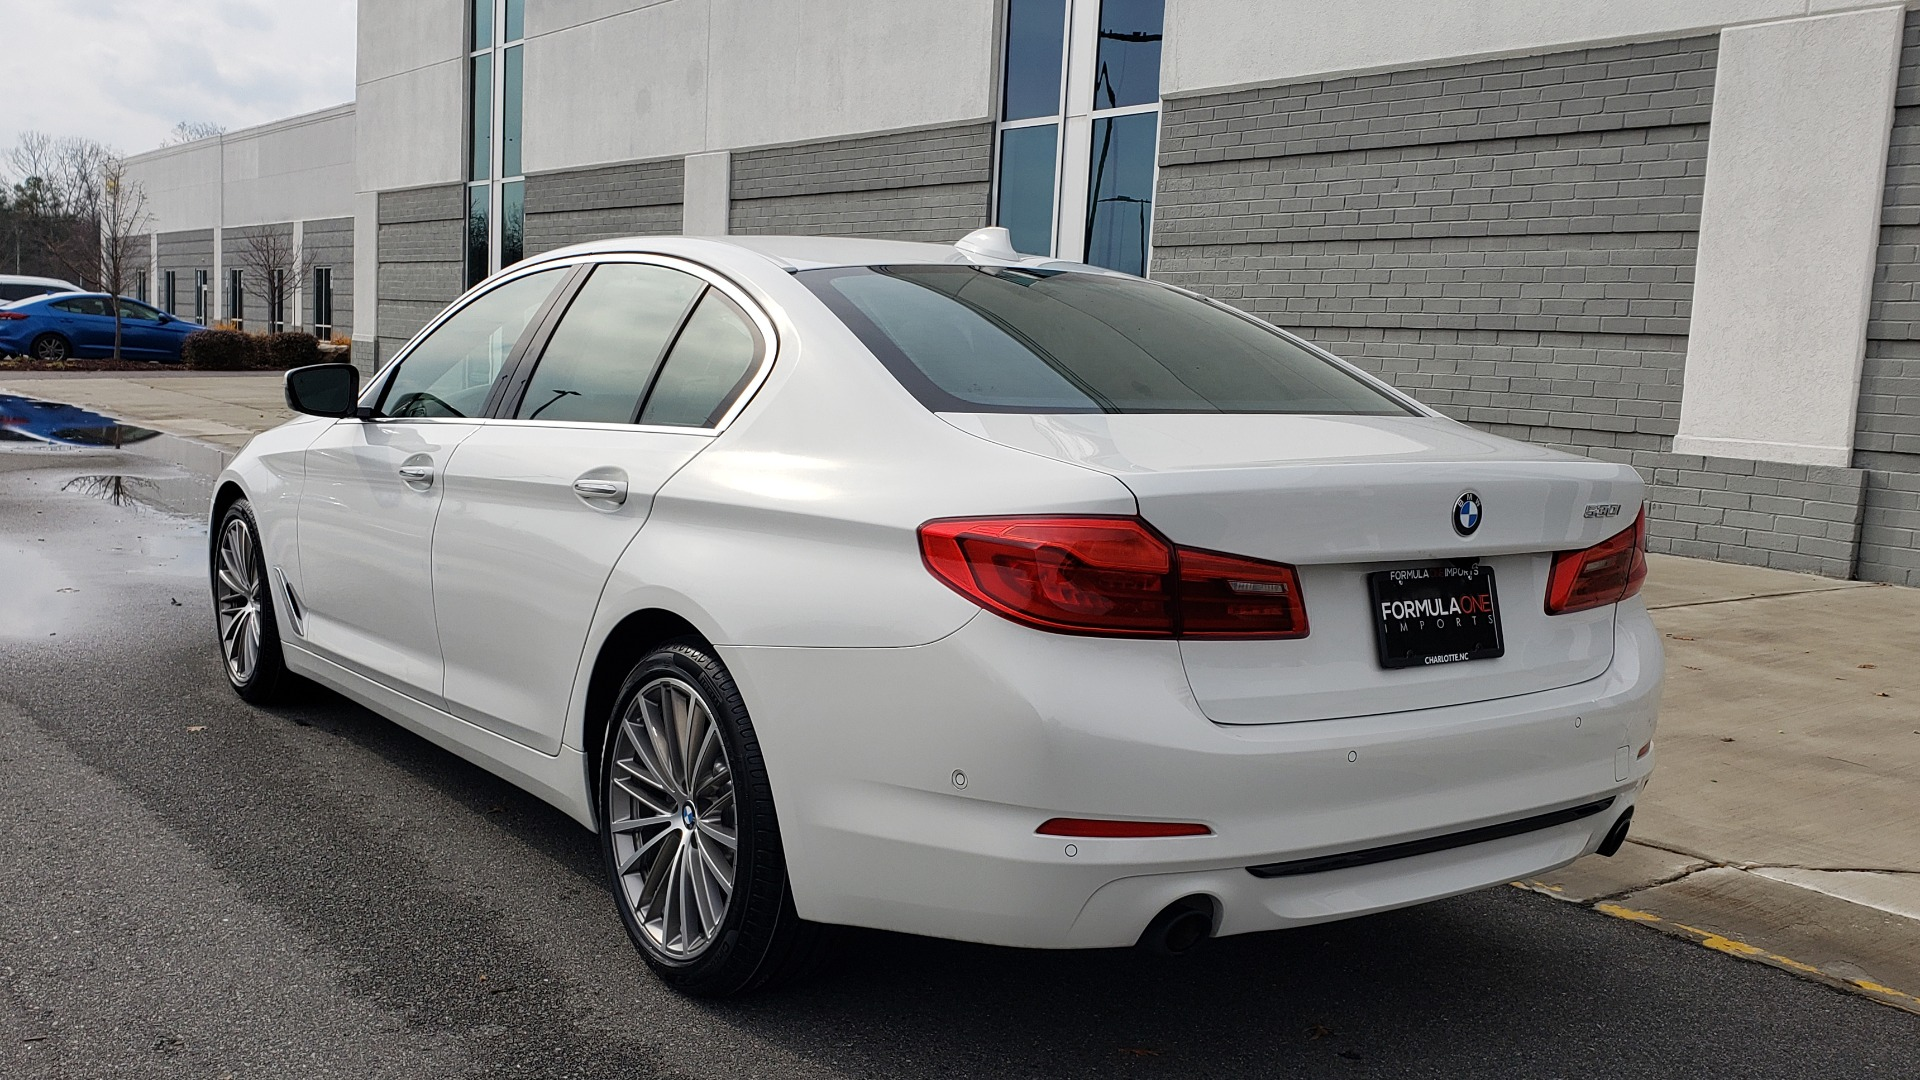 Used 2017 BMW 5 SERIES 530I PREMIUM / DRVR ASST PLUS / NAV / HUD / SUNROOF / REARVIEW for sale Sold at Formula Imports in Charlotte NC 28227 6